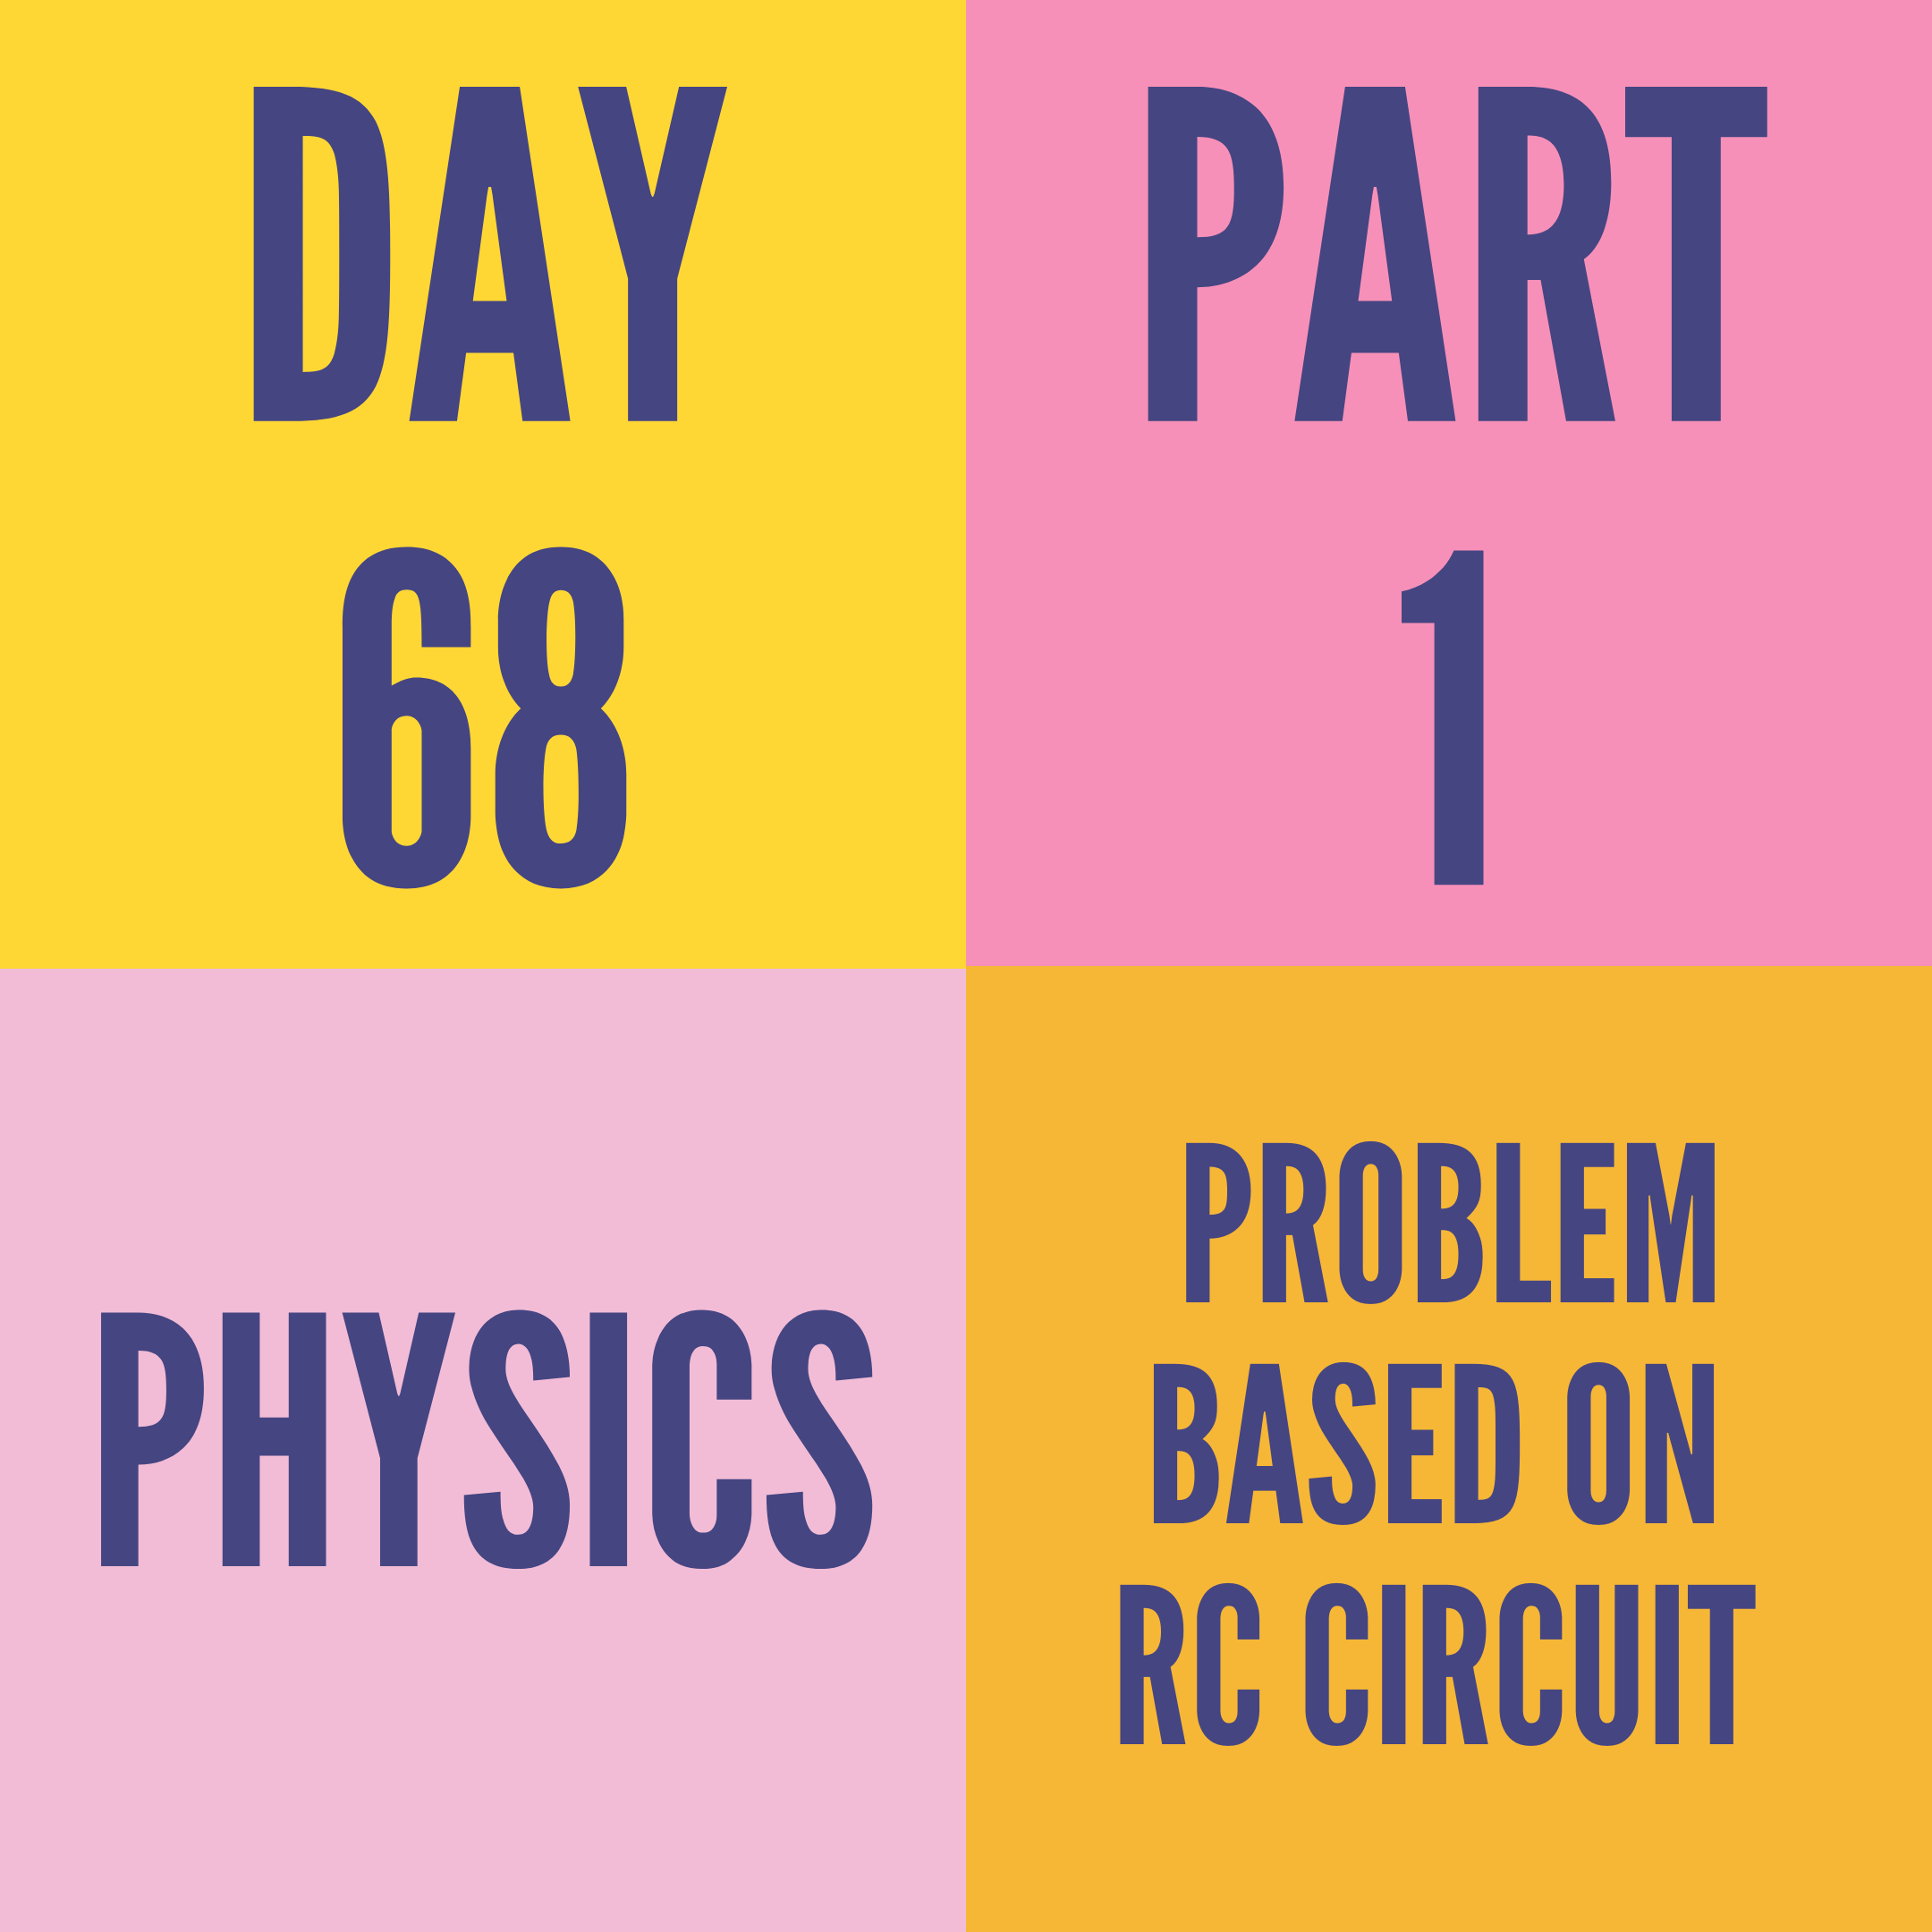 DAY-68 PART-1  PROBLEM BASED ON RC CIRCUIT